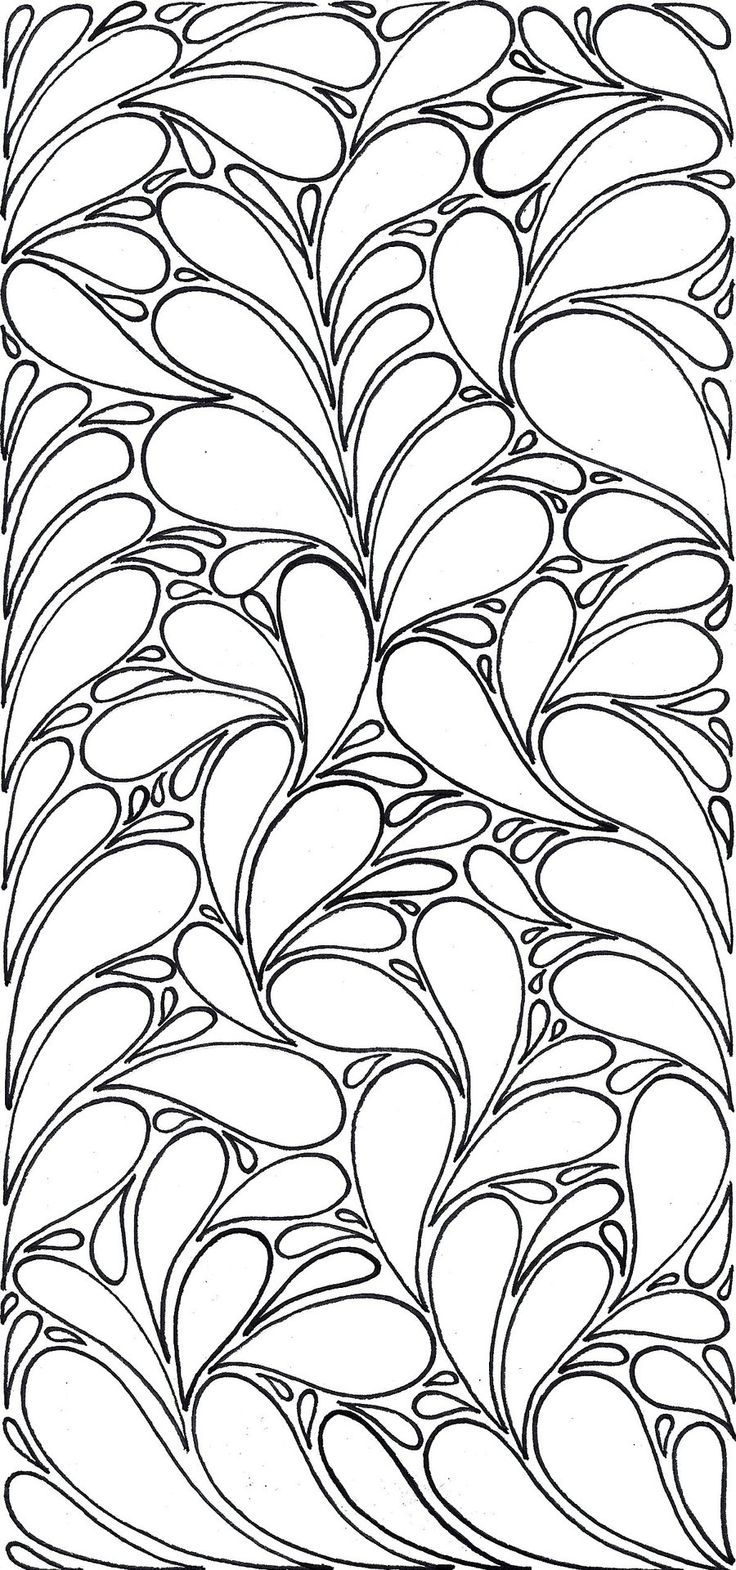 Your Way, another free printable template by Creature-of-Habit88 on deviantART.  . . .  ღTrish W ~ http://www.pinterest.com/trishw/  . . .   #doodle #paisley #teardrop